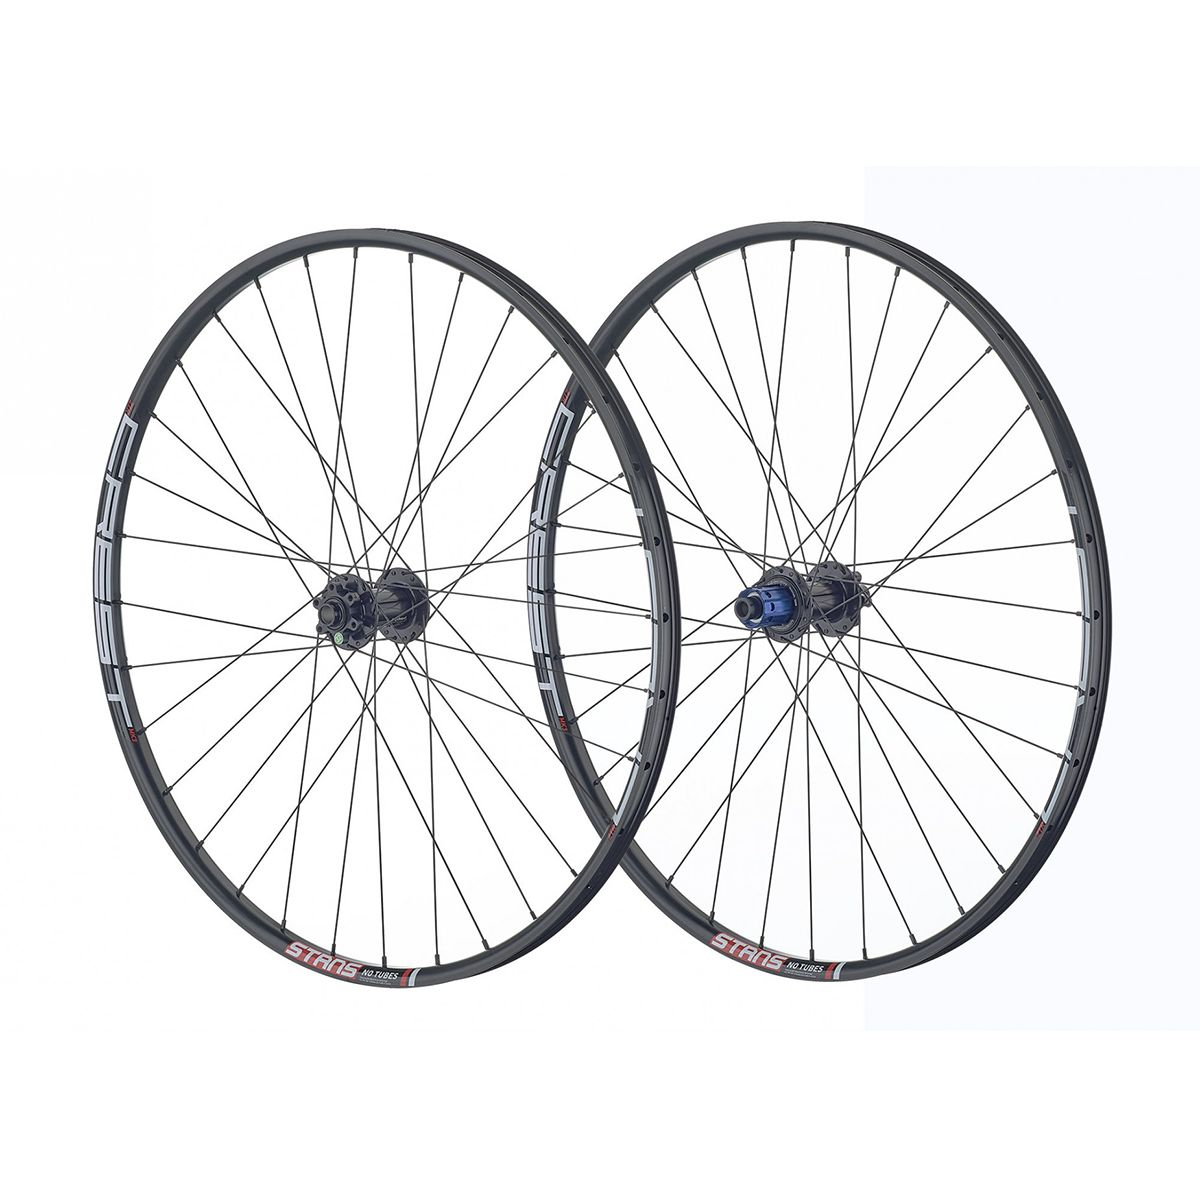 "Tune RACE 3.0 MTB wheelset 29"" SRAM XD 